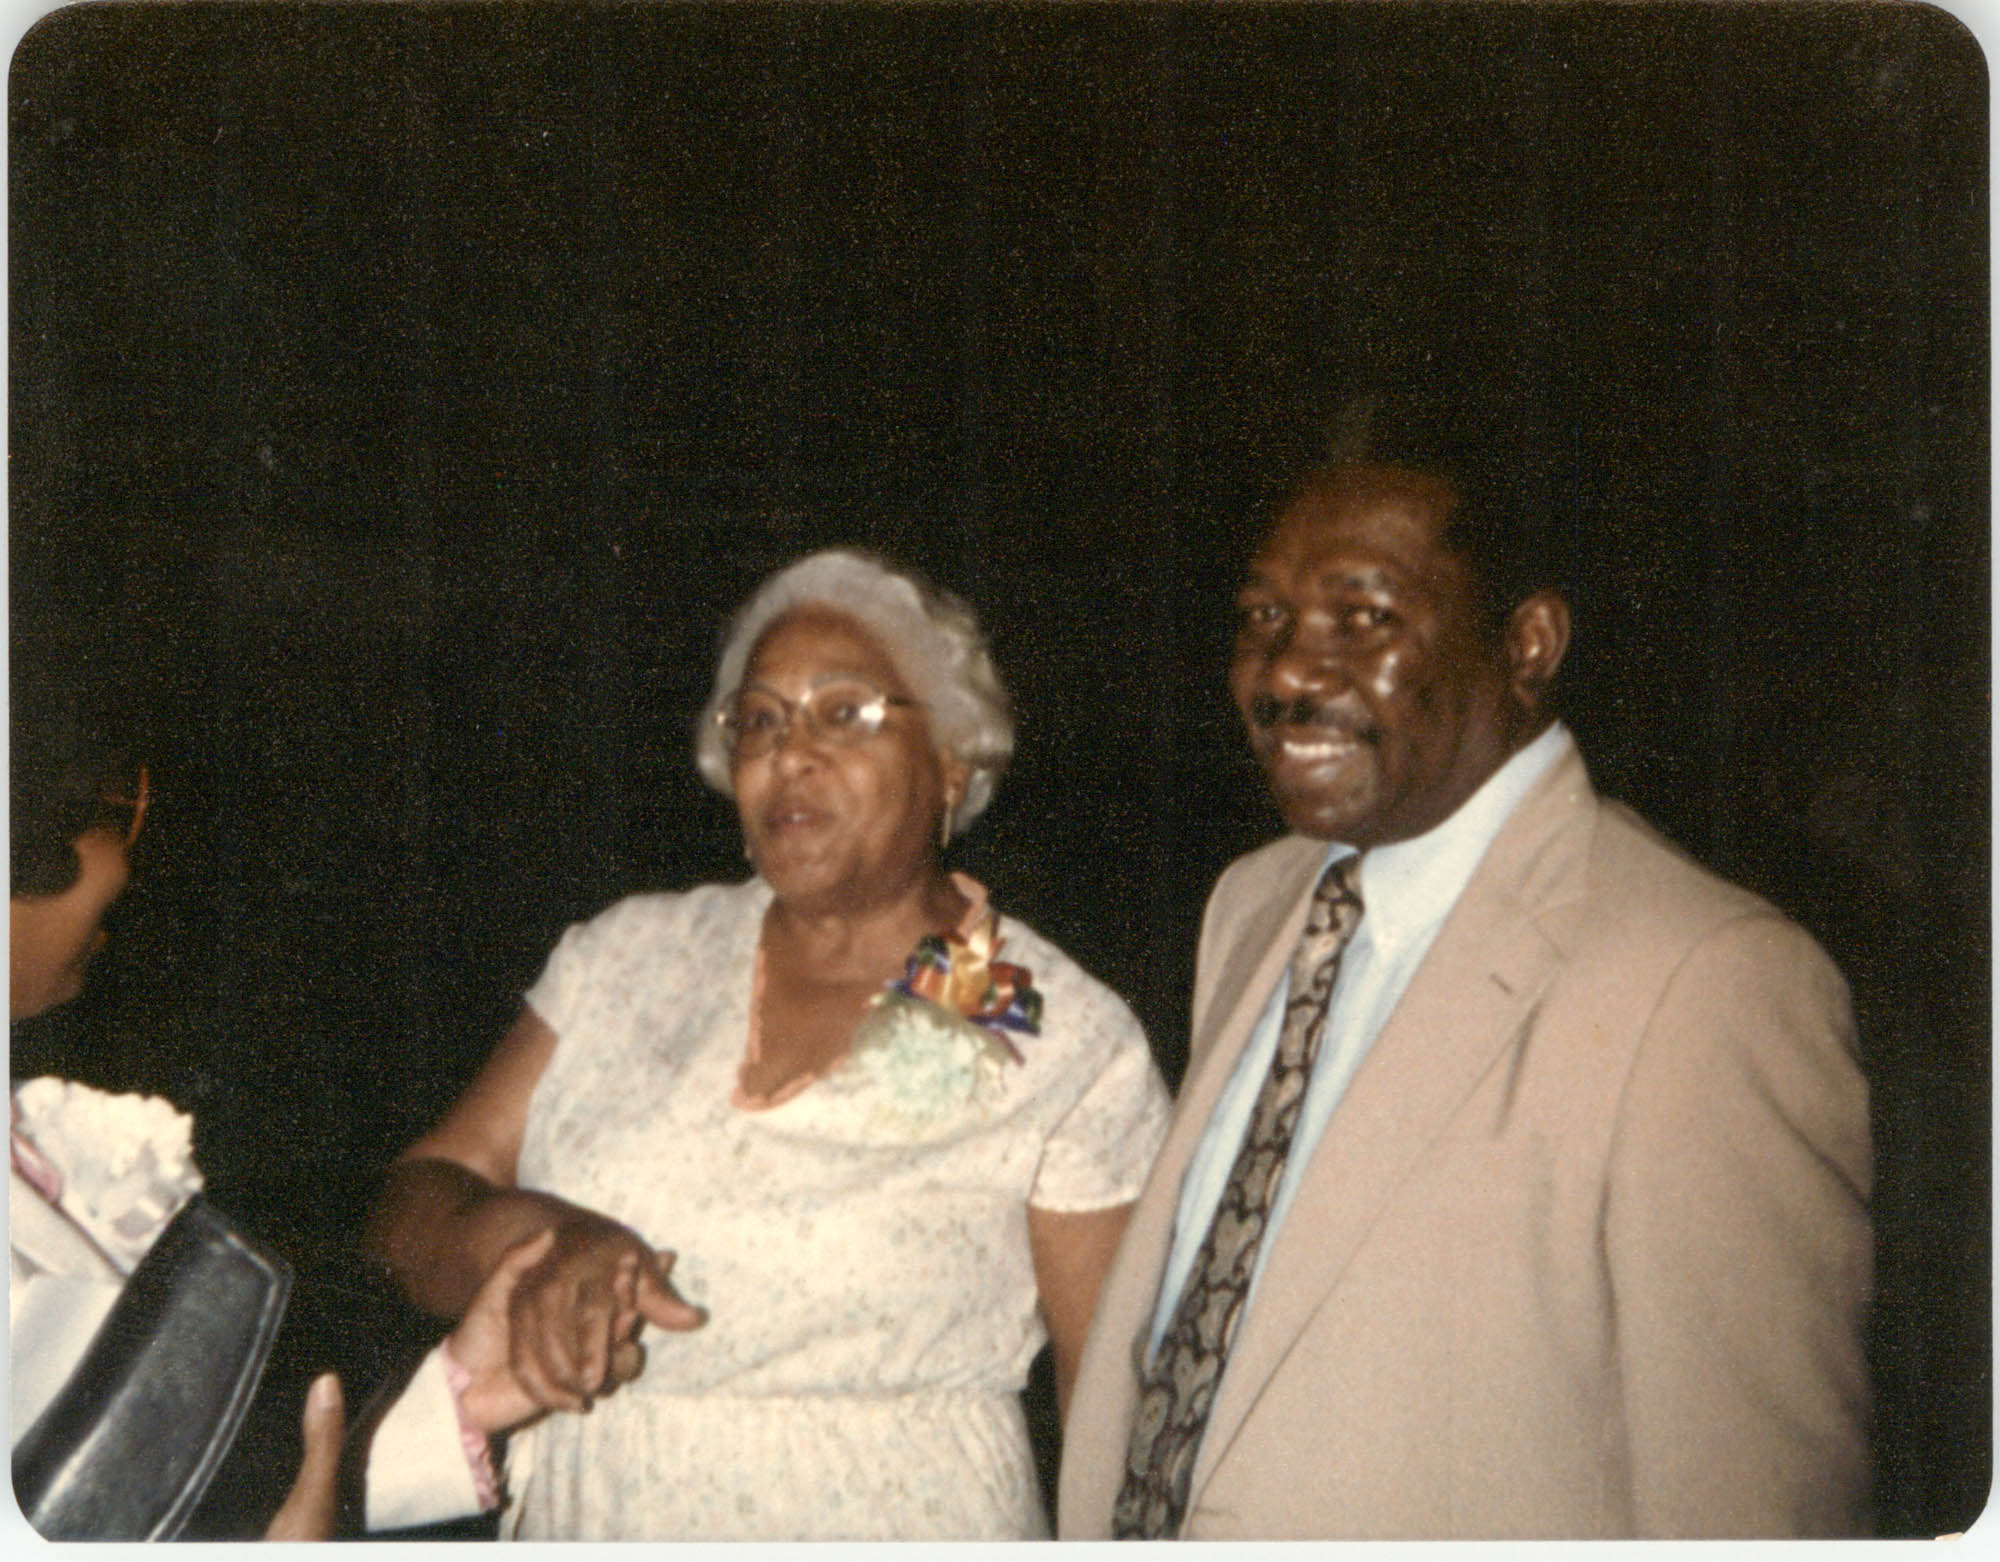 Photograph of Two People